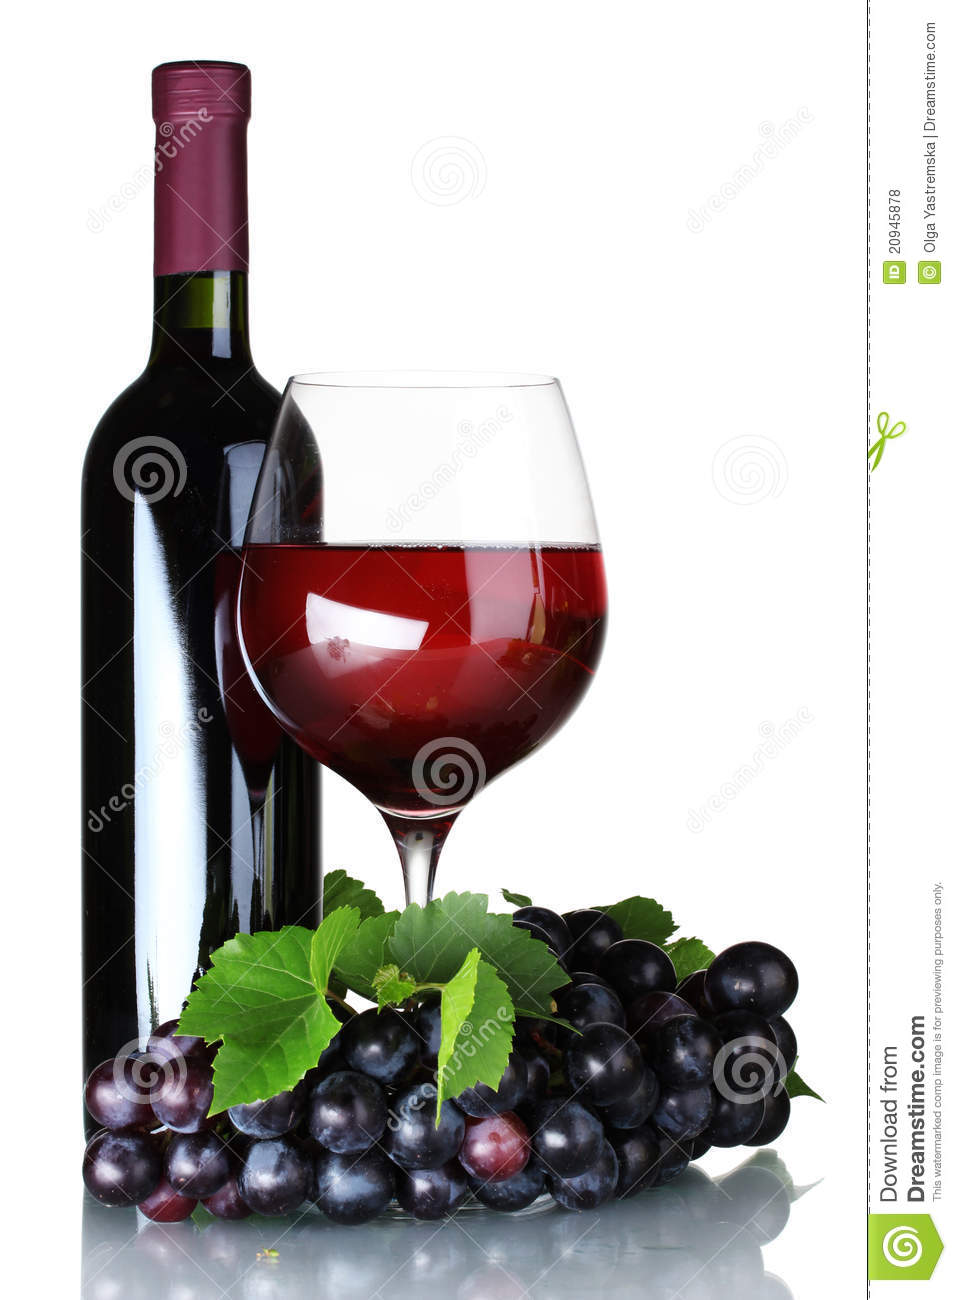 How to Select a Bottle of Wine with Pictures  wikiHow